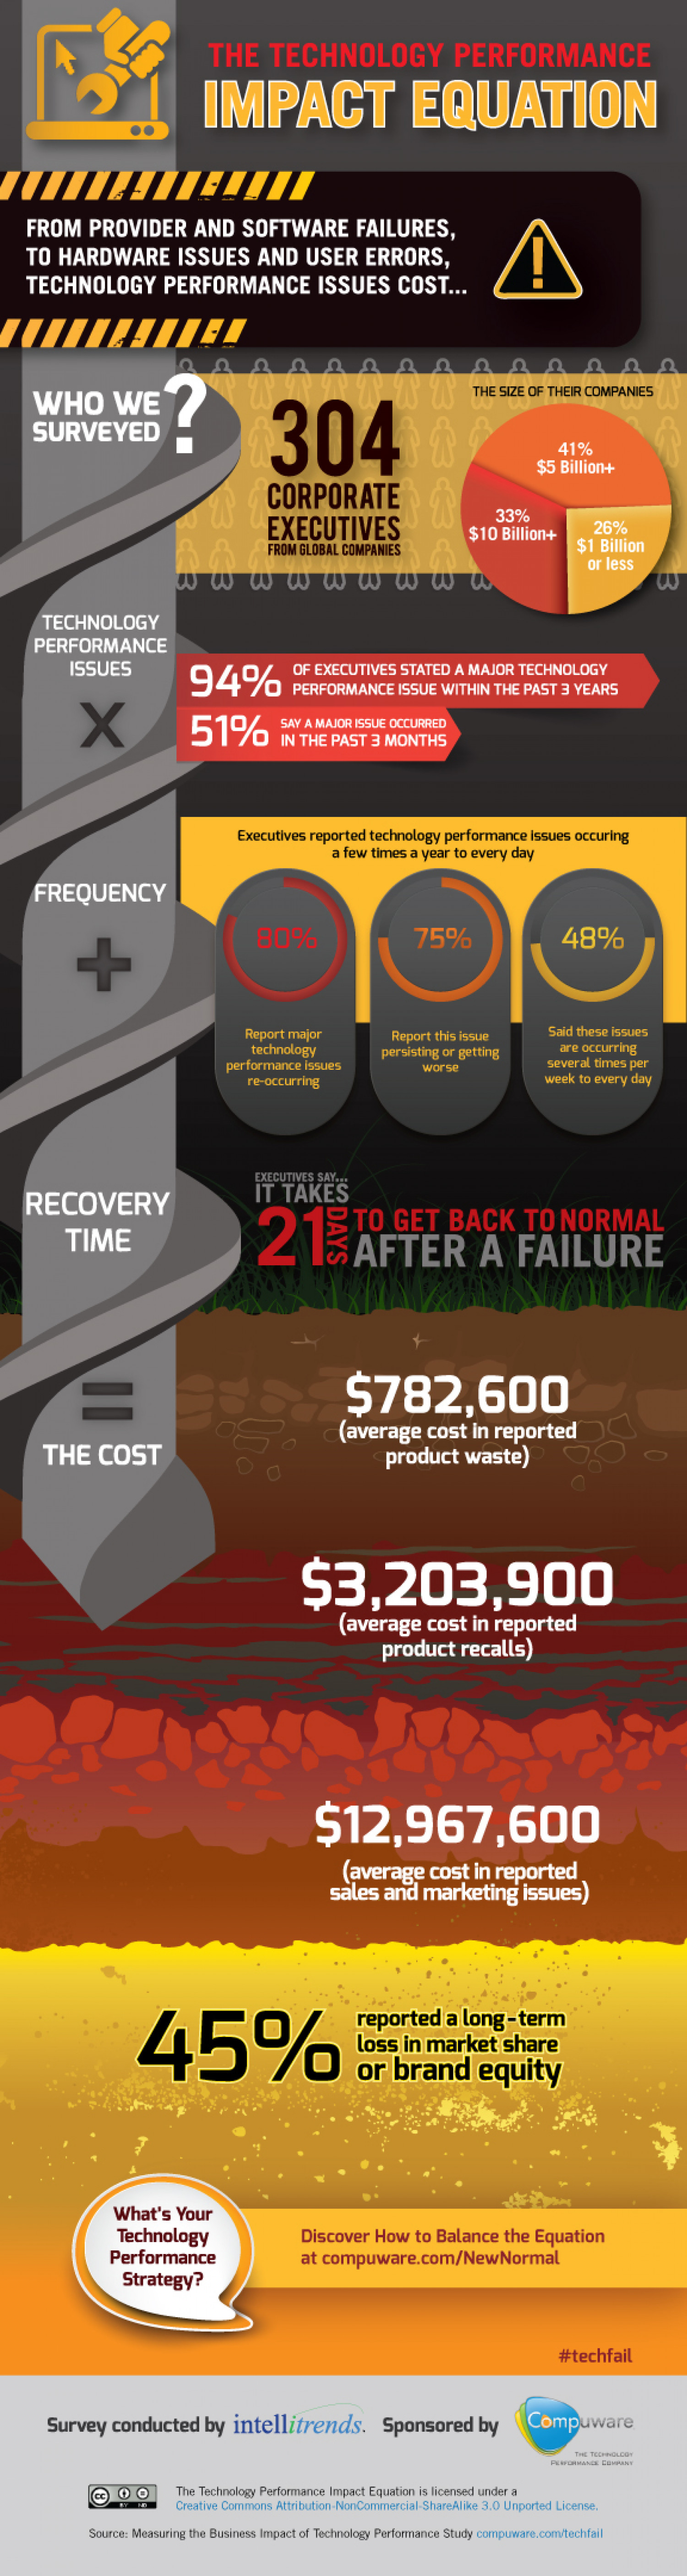 The Technology Performance Impact Equation Infographic